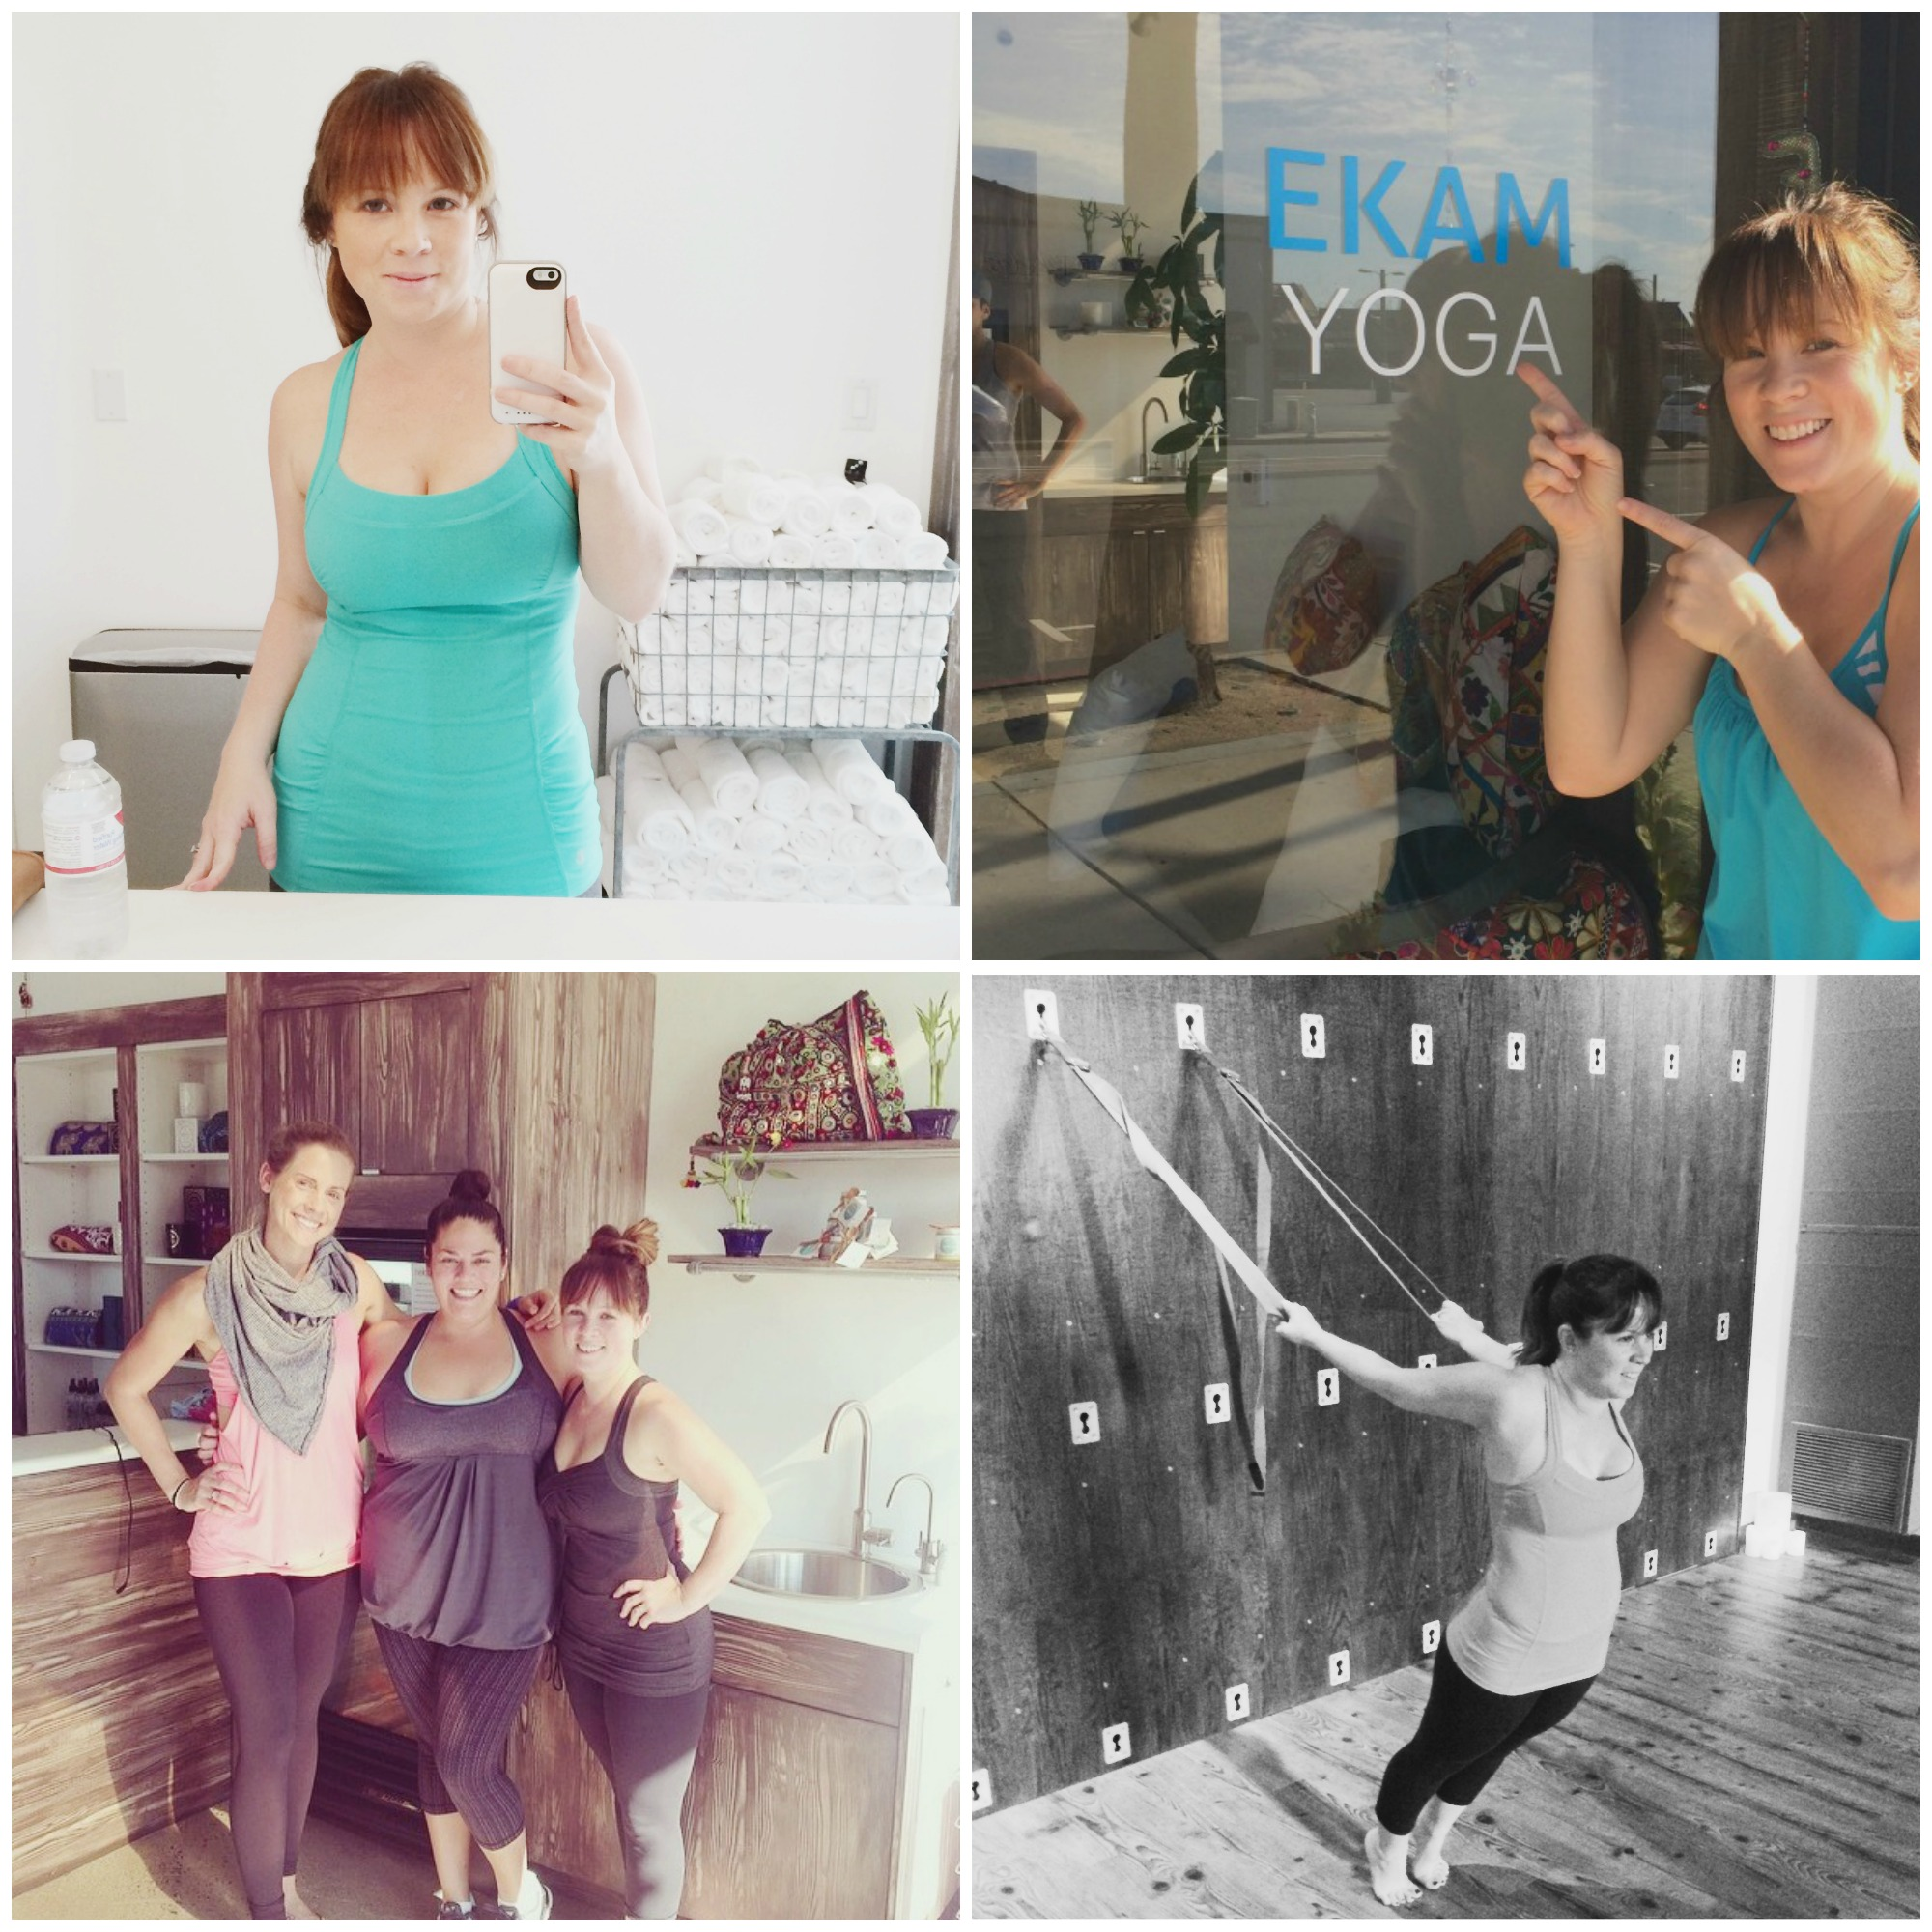 Ekam yoga collage